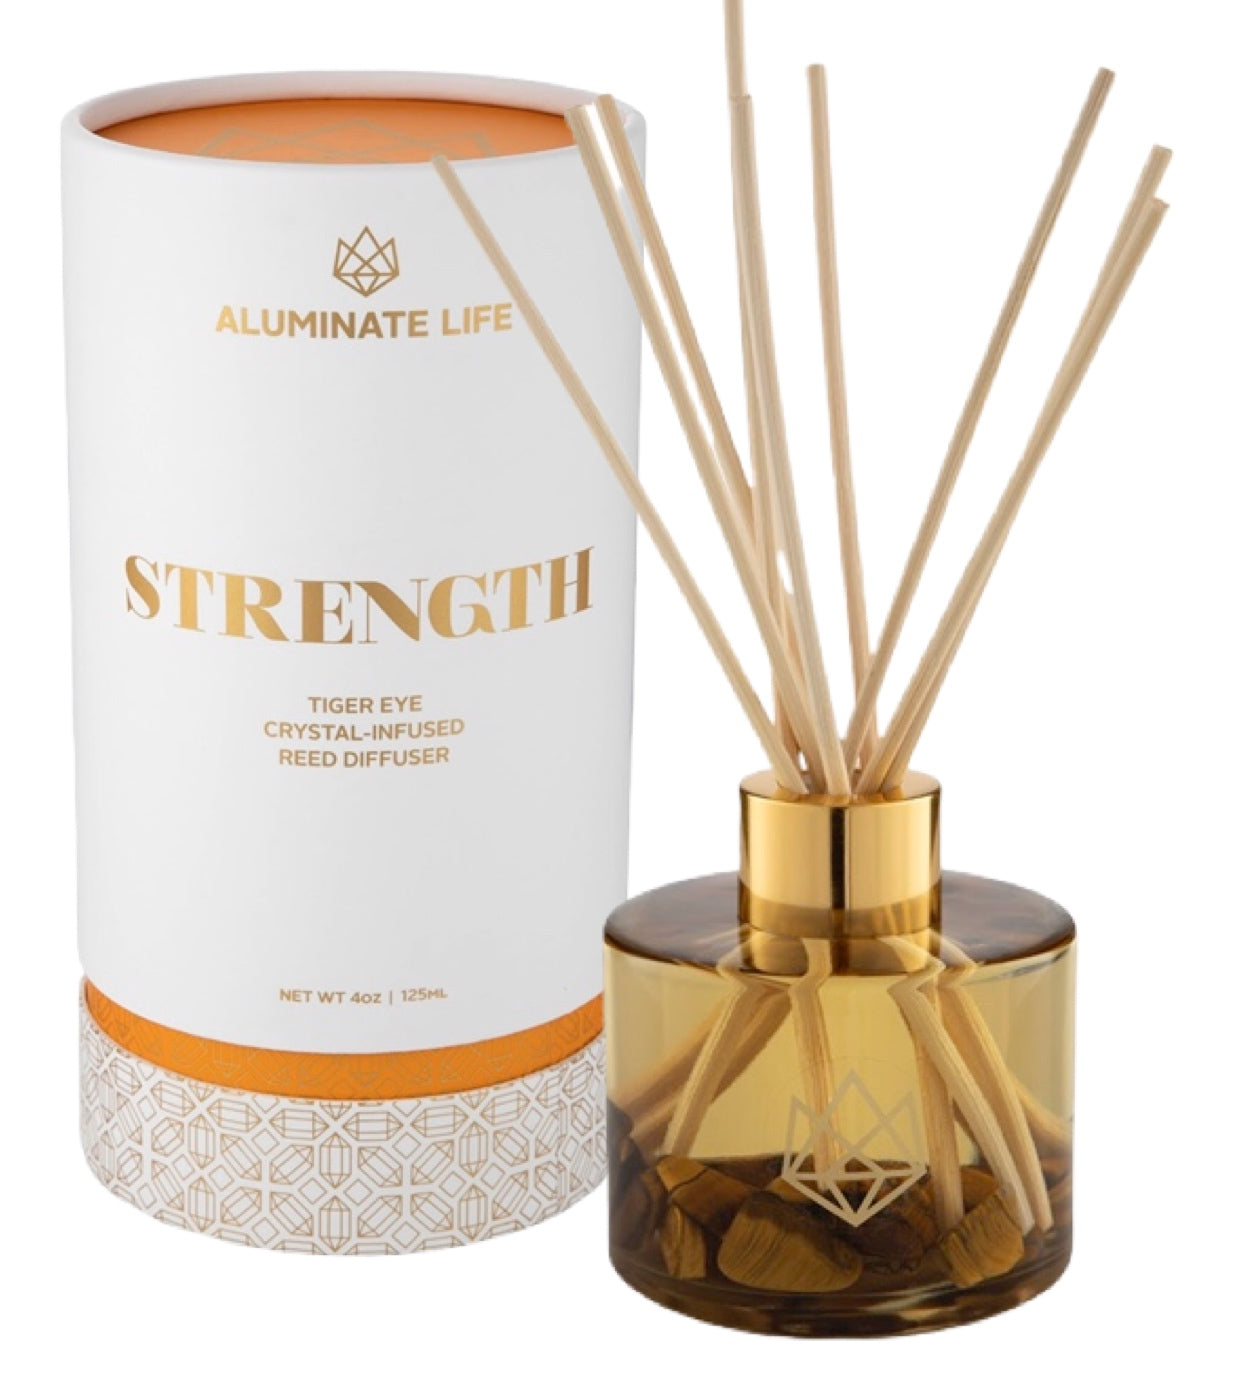 Strength Reed Diffuser - Aluminate Life